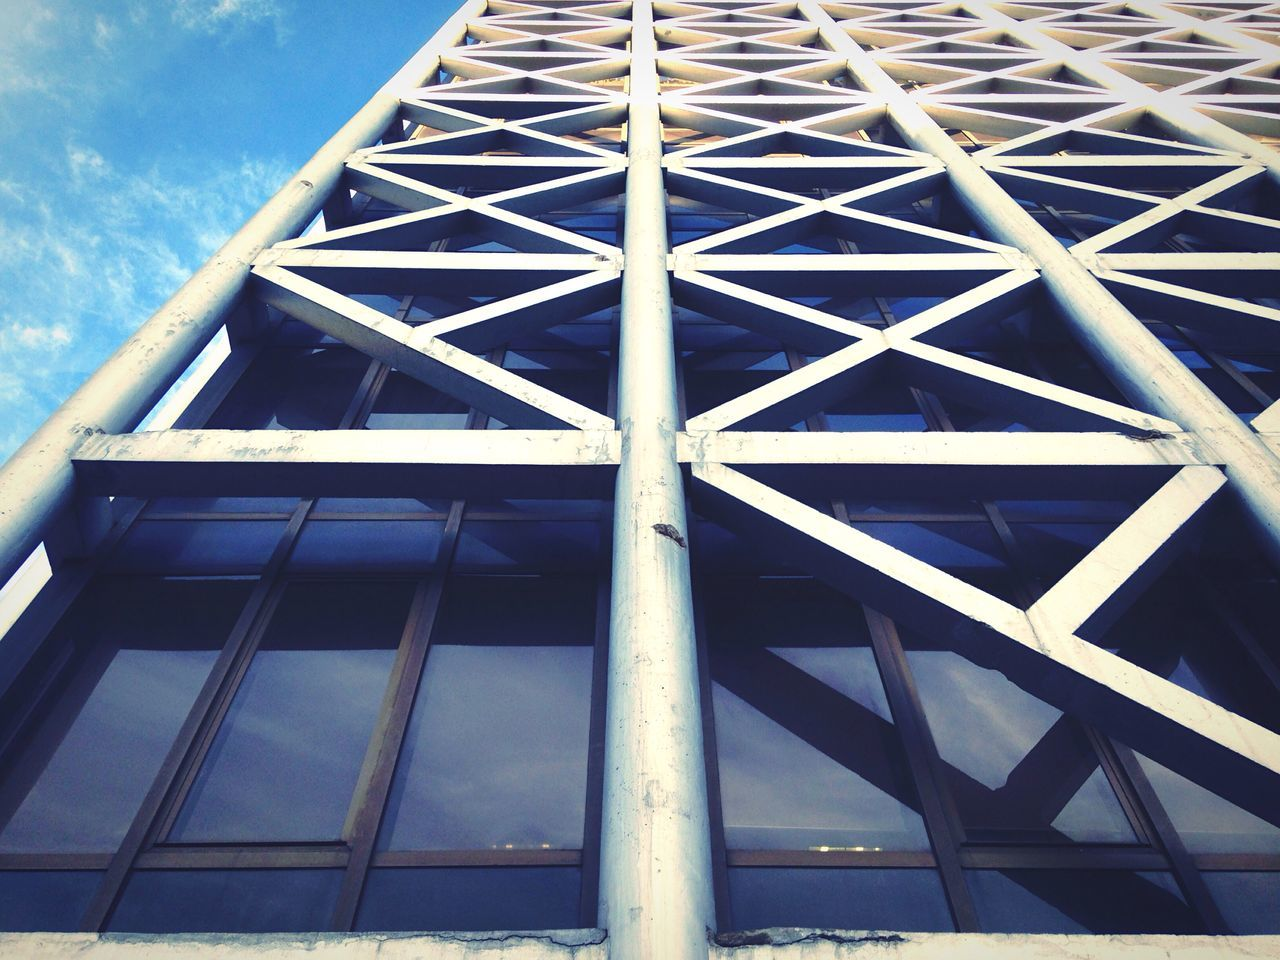 architecture, built structure, low angle view, day, no people, outdoors, building exterior, sky